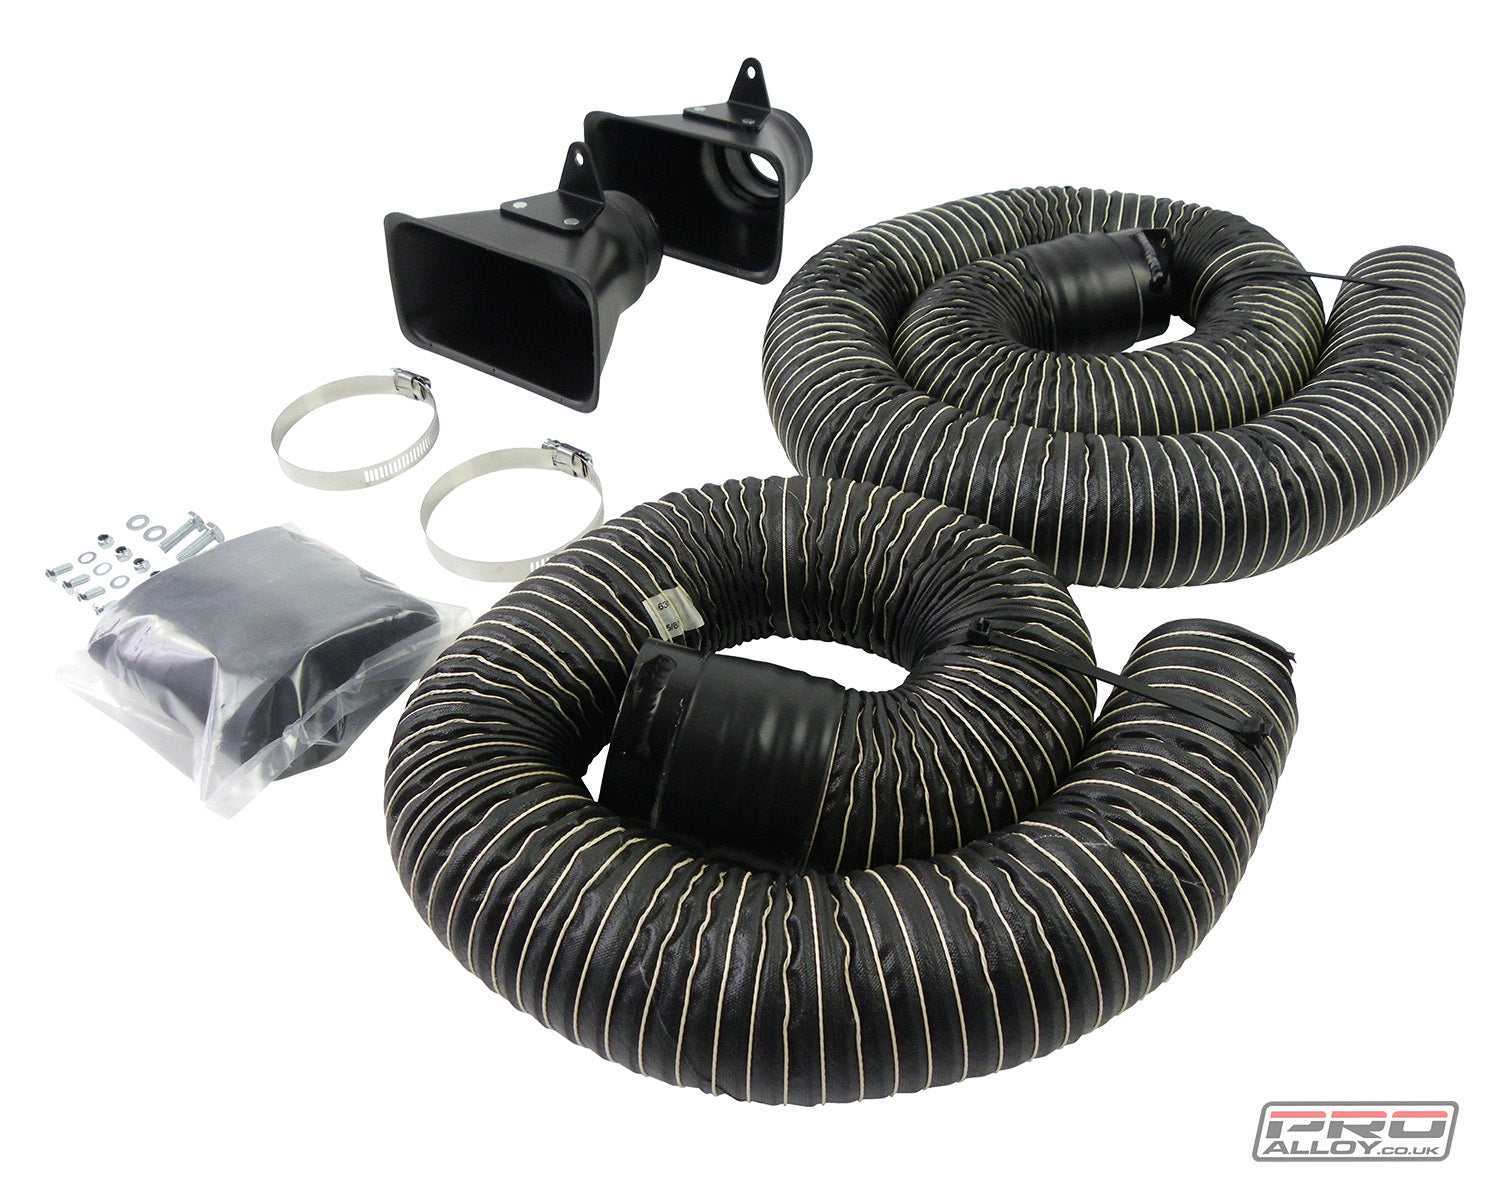 Exige S Intercooler Duct Kit